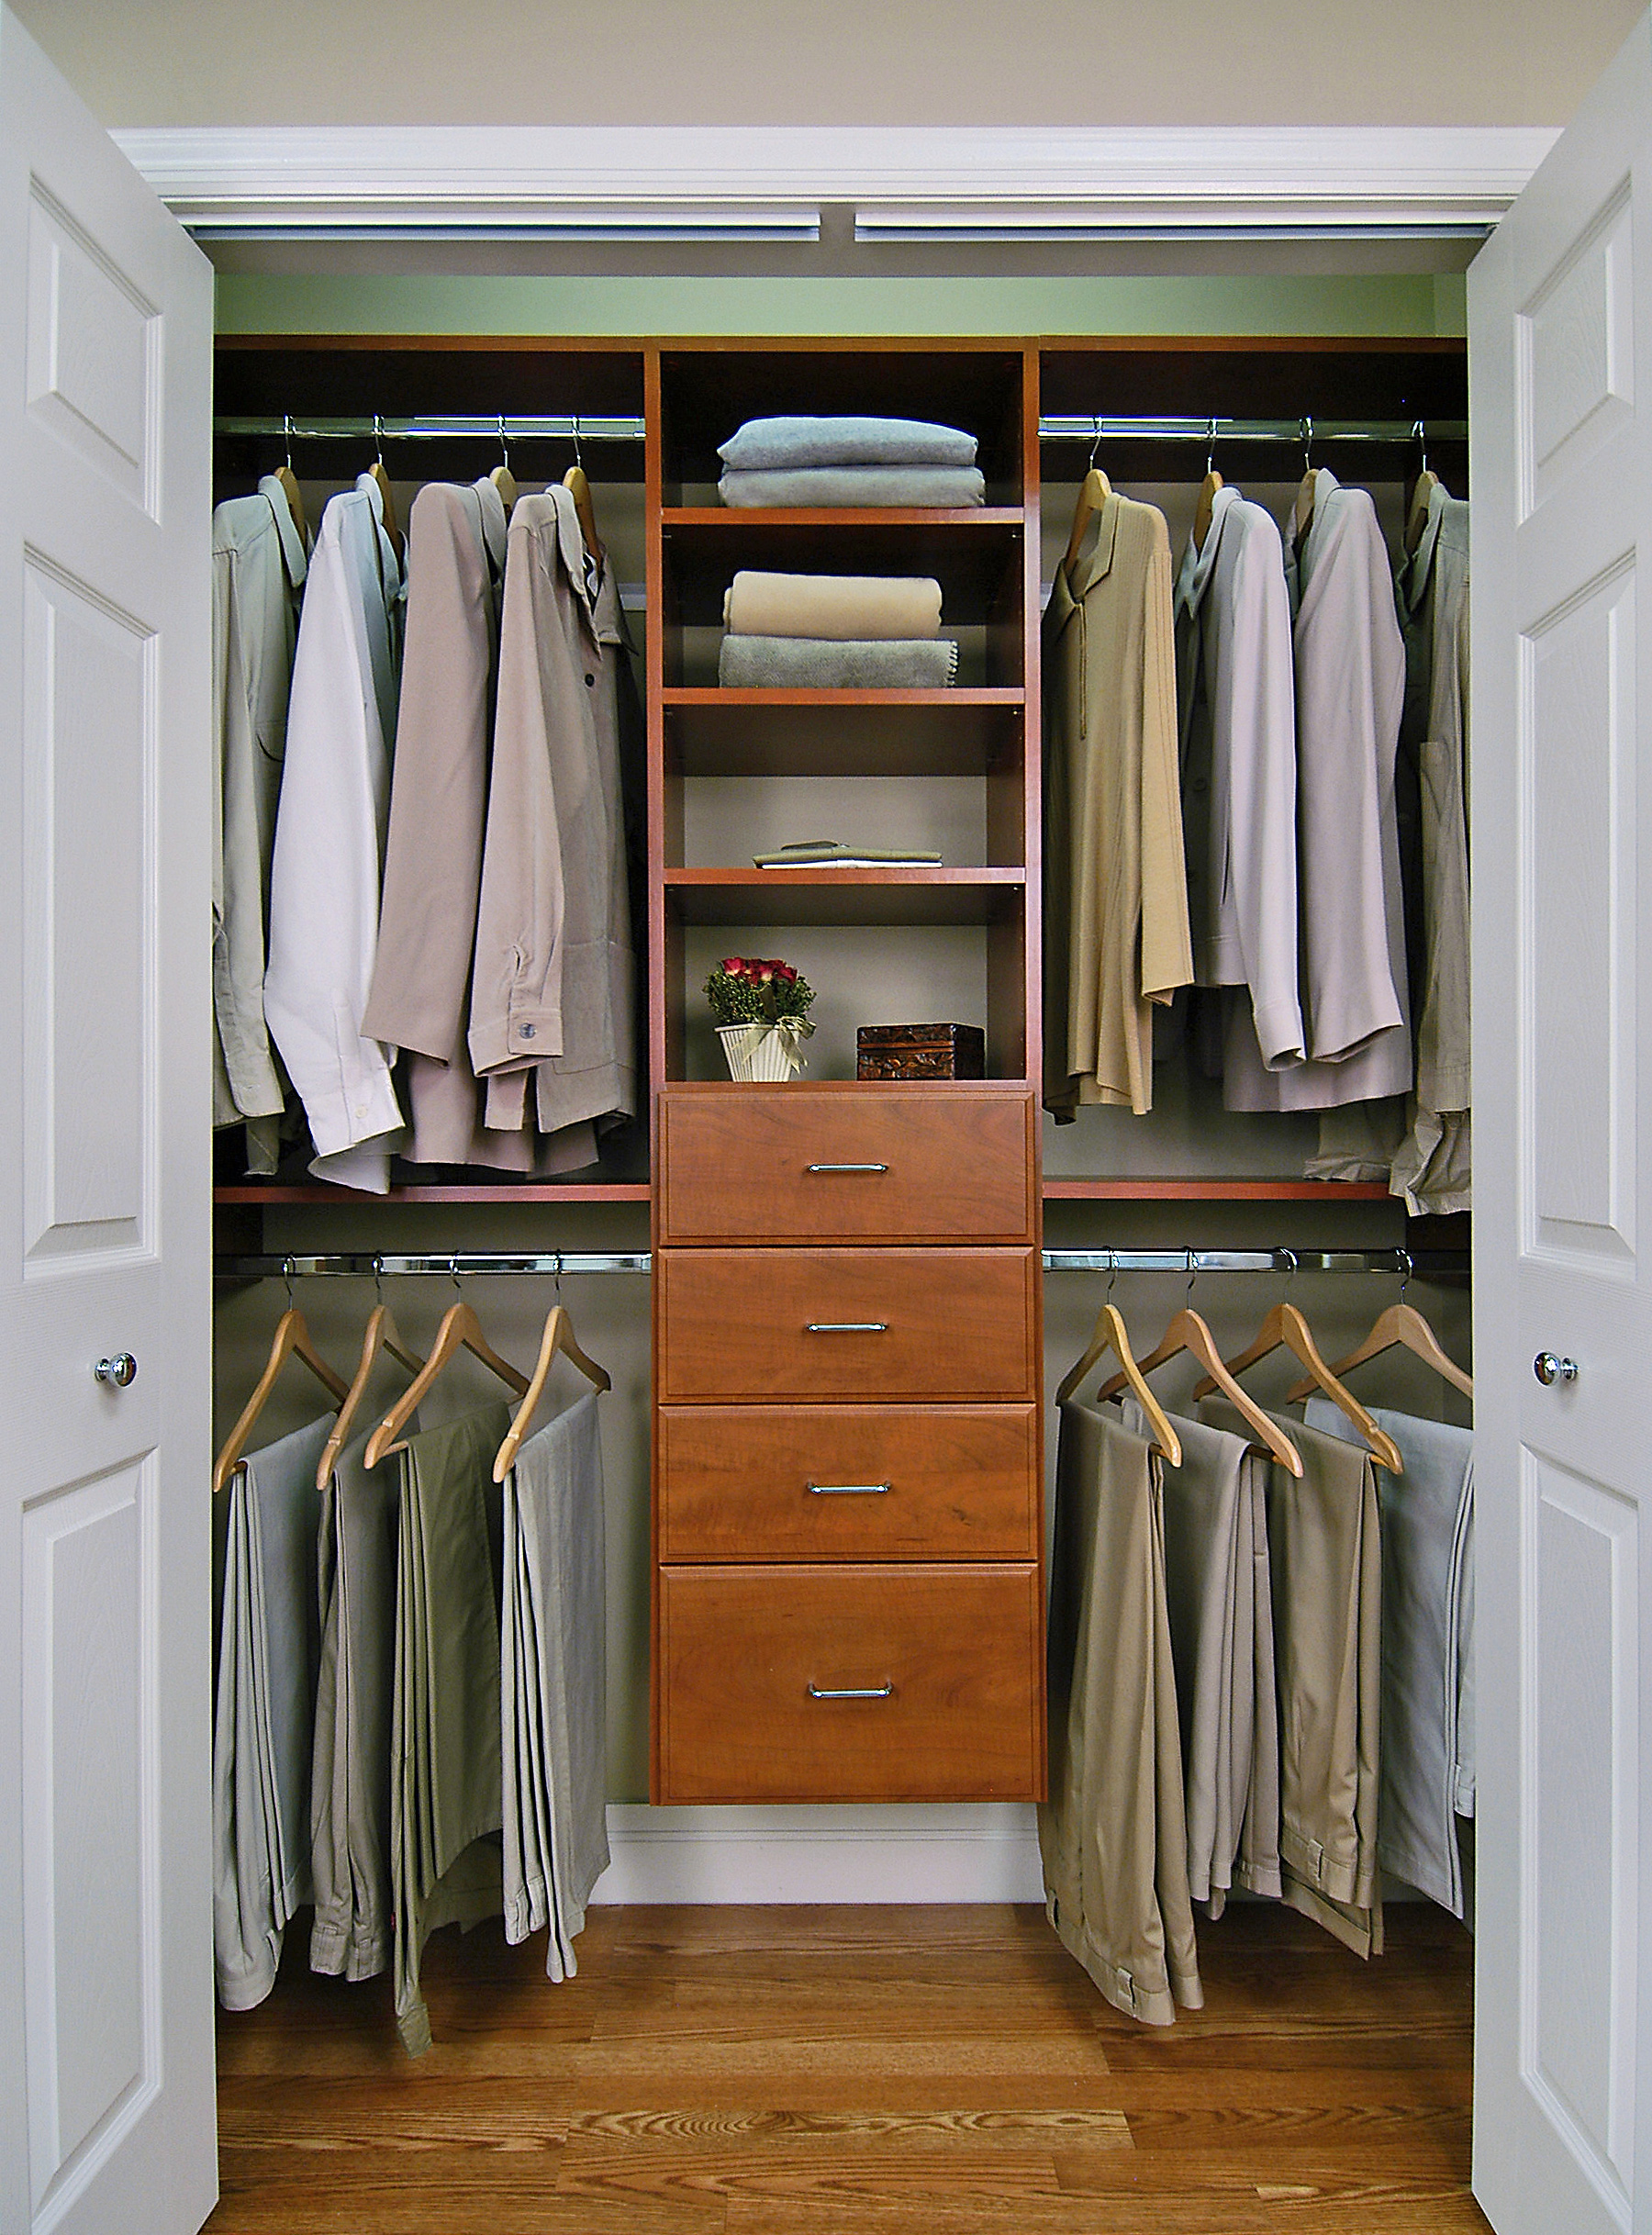 Closet Planner for Best Storage System Ideas: Closet Planner Tool | Closet Planner | California Closets Canada